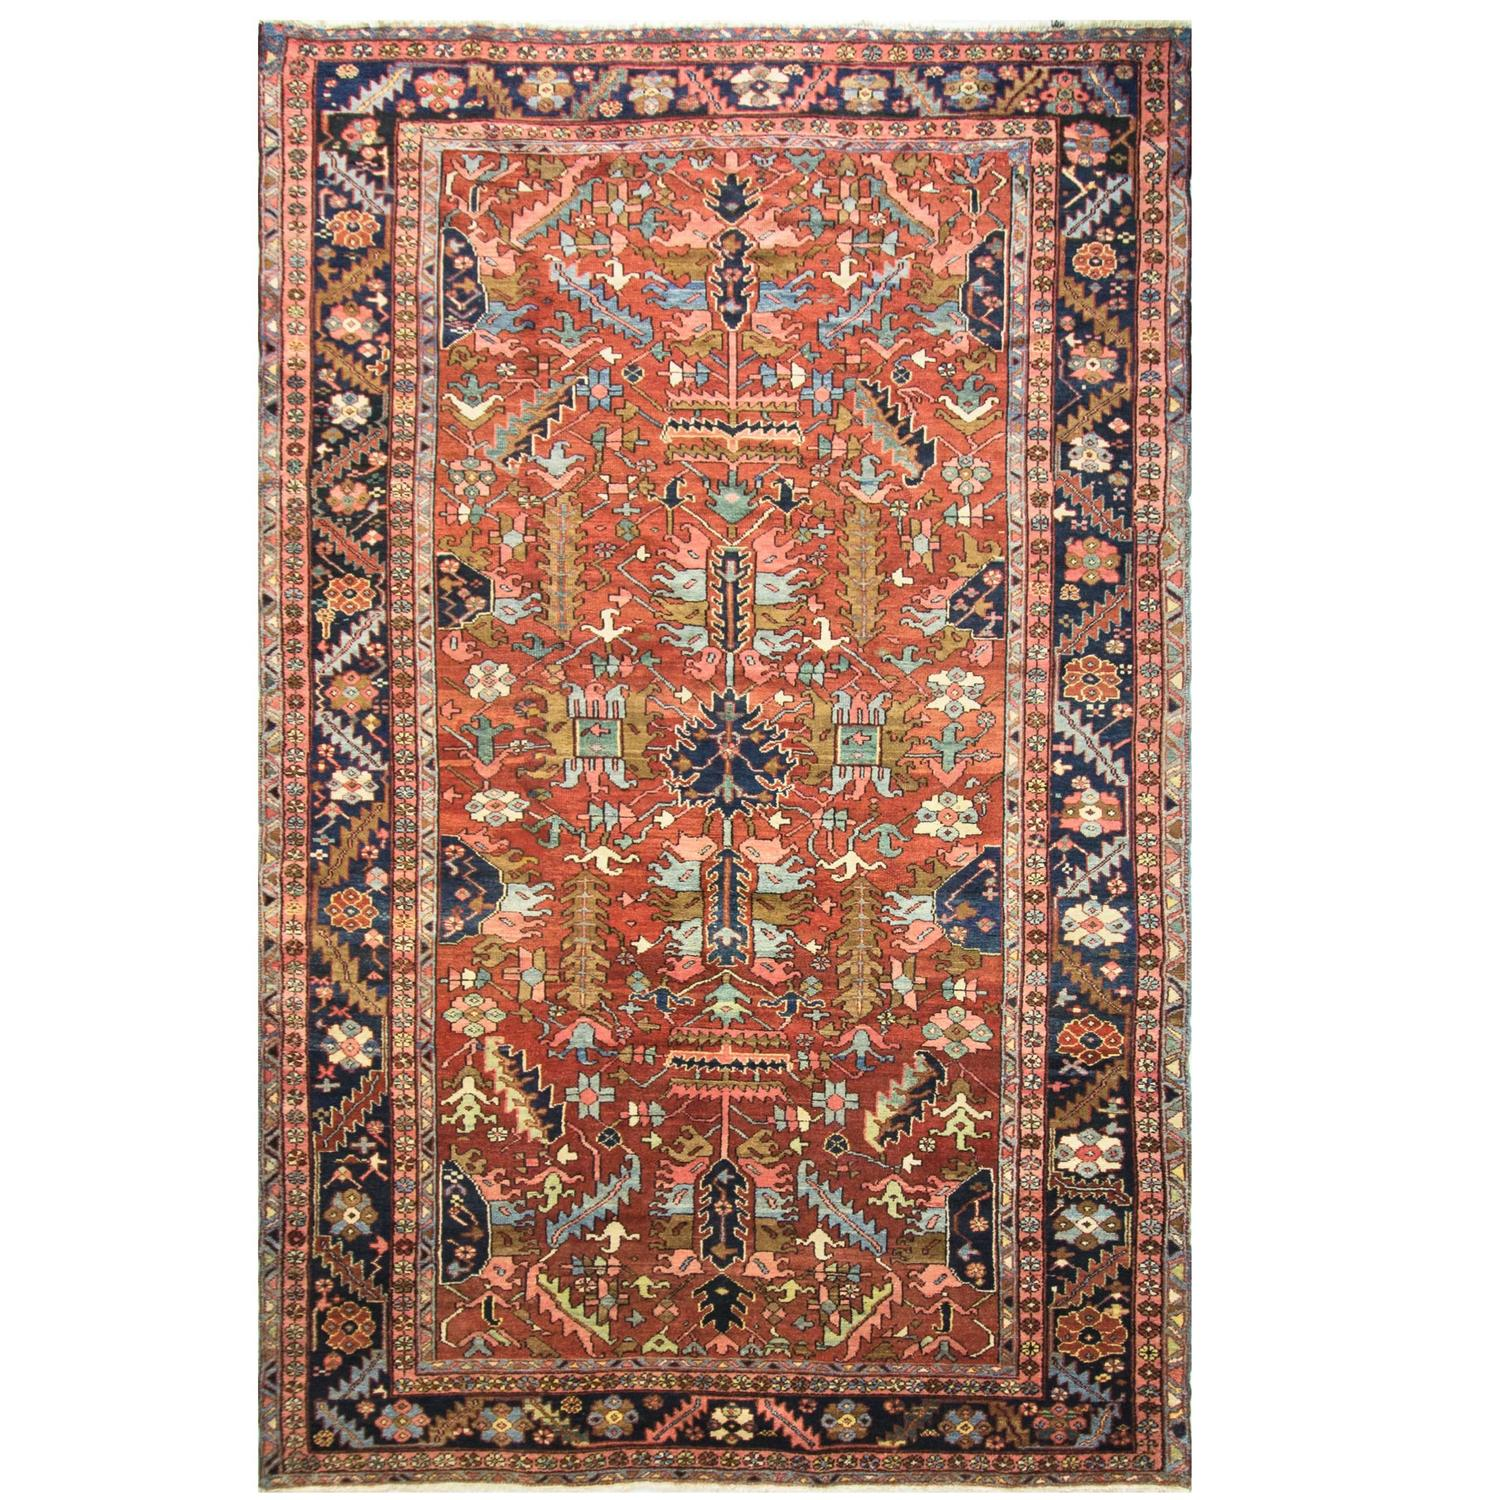 Antique Heriz Village Carpet For Sale At 1stdibs